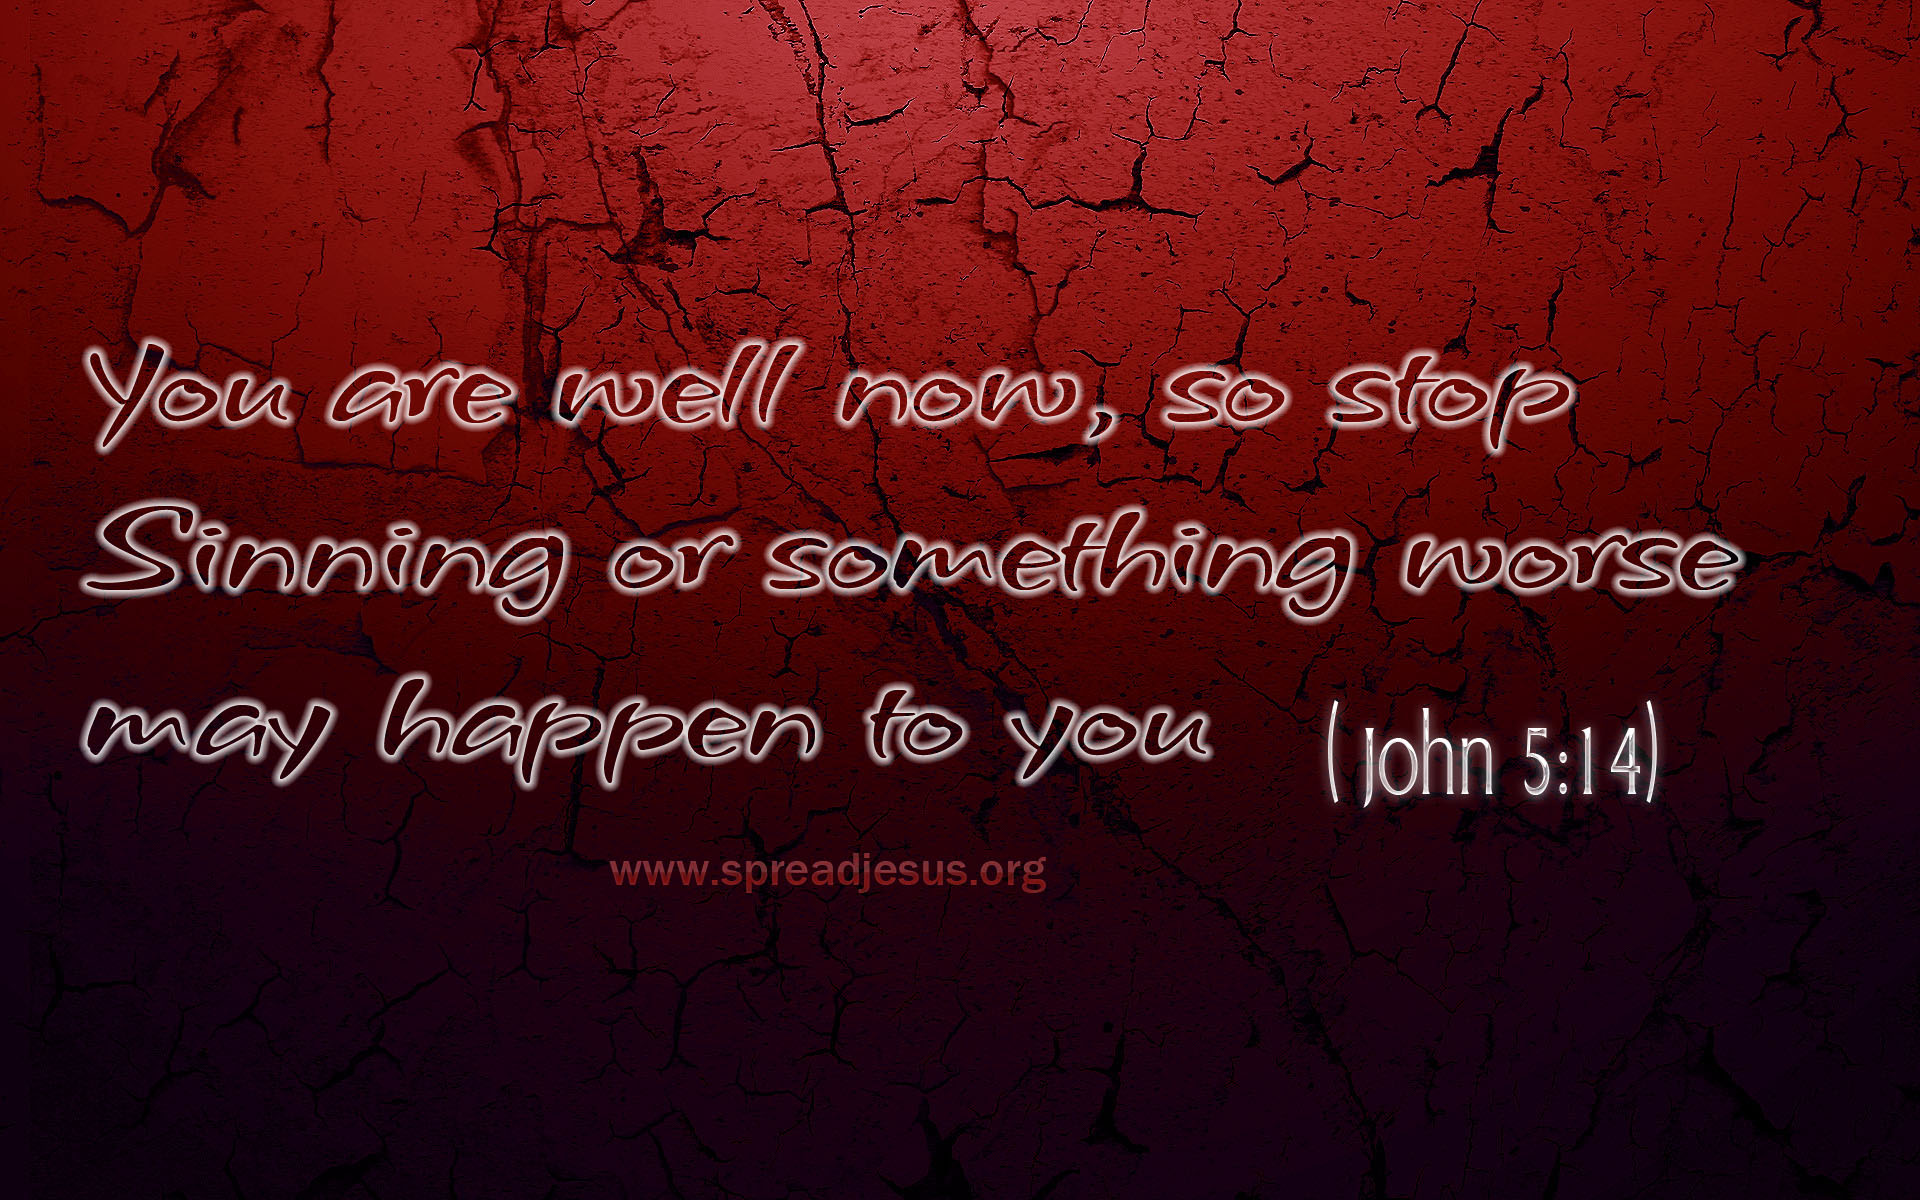 BIBLE QUOTES HD WALLPAPERS JOHN 3:3 FREE DOWNLOAD Jesus